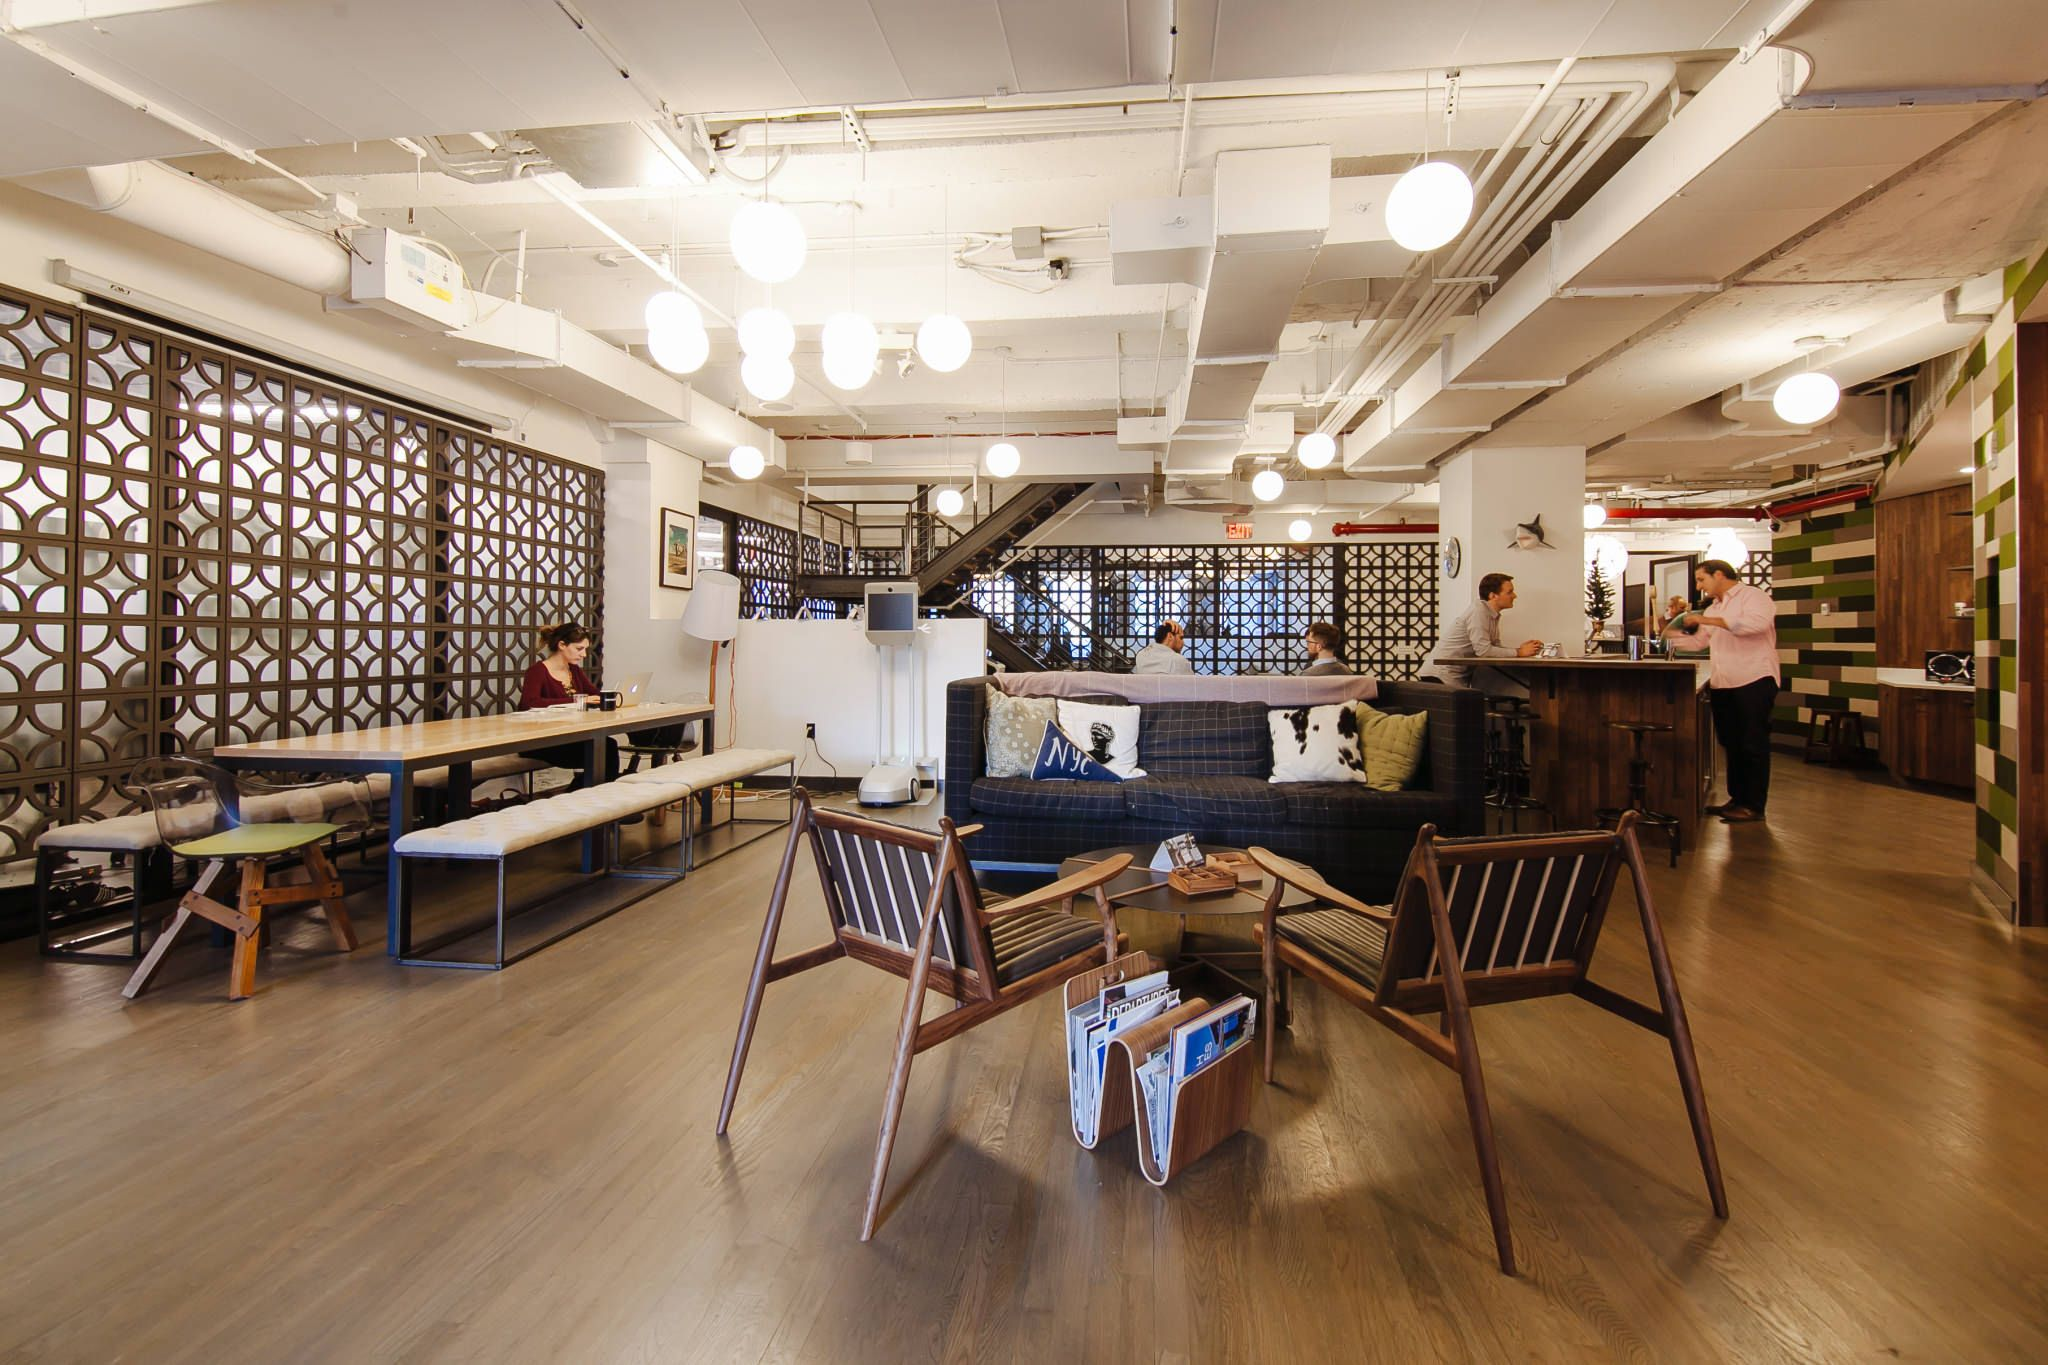 Pin By Plasmosis Plasmosis On Office Workspace Design Office